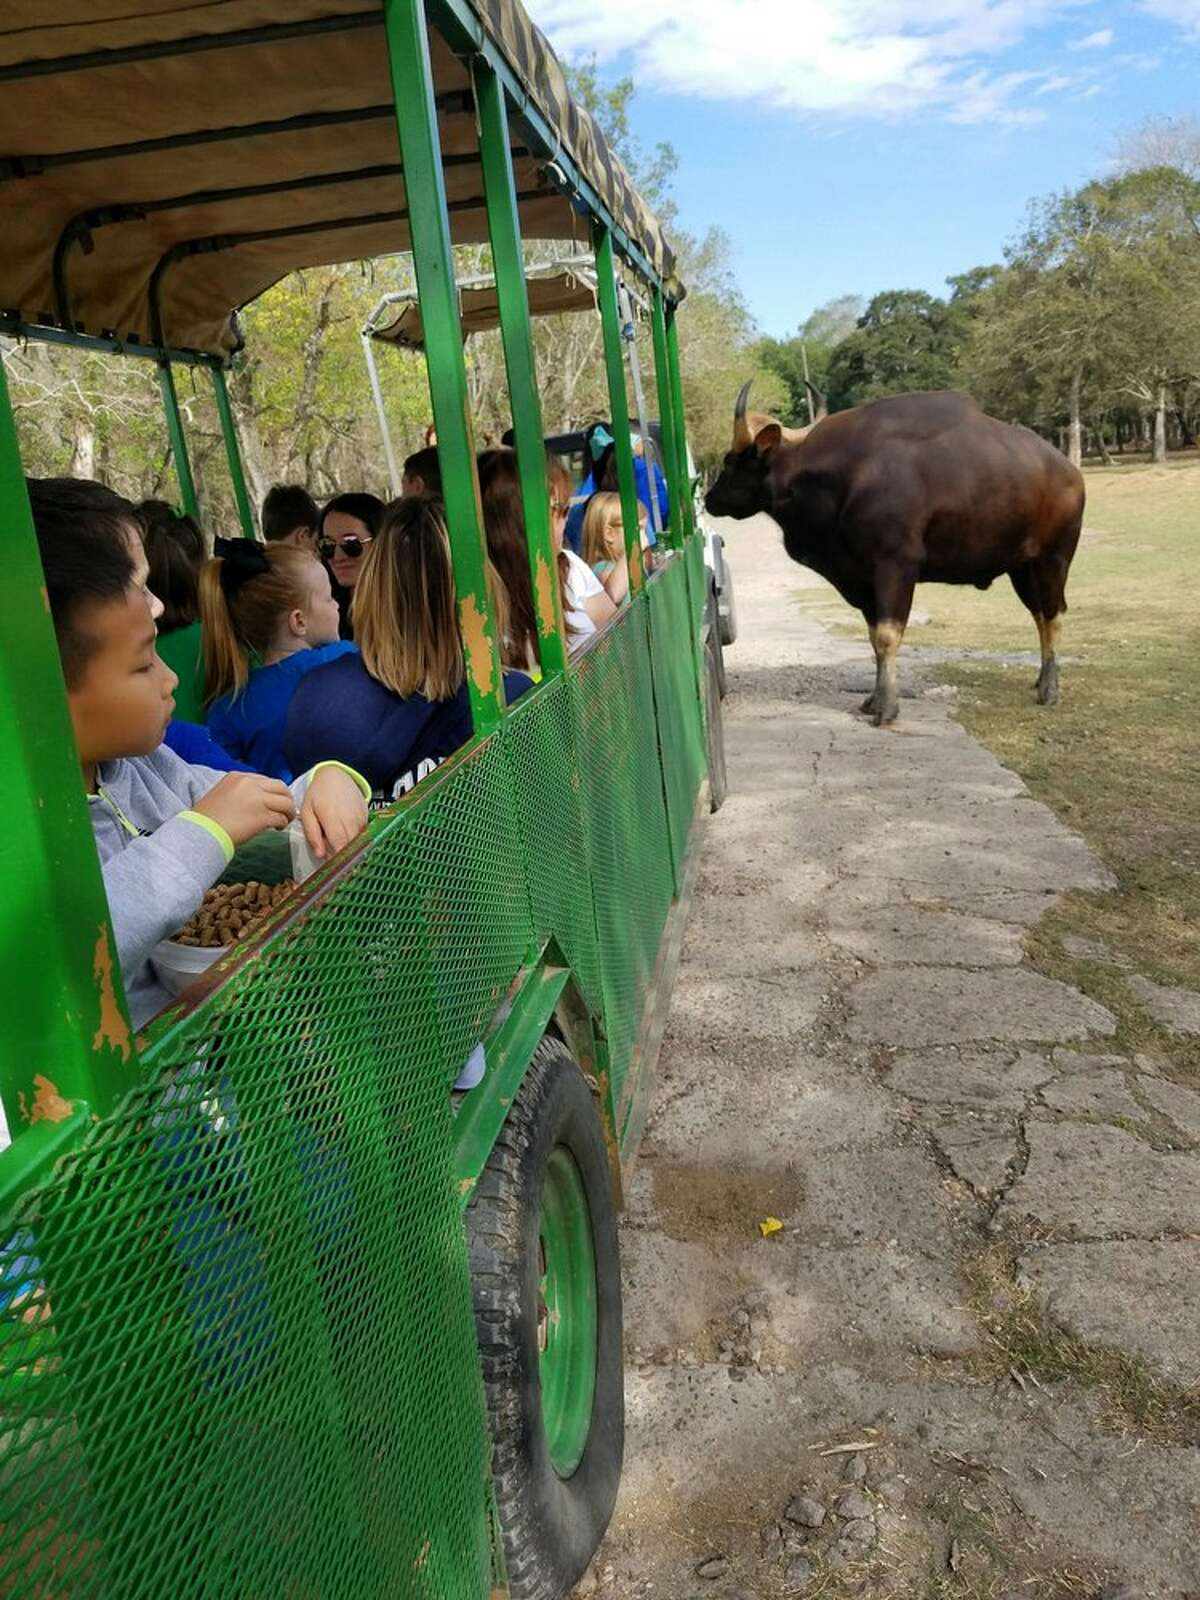 Alvin: Bayou Wildlife ZooThe zoo, which recently reopened under new COVID-19 restrictions and at the hands of new owners, is a free-range facility that allows guests to feed animals straight from trams. Photo courtesy Jo J/Yelp